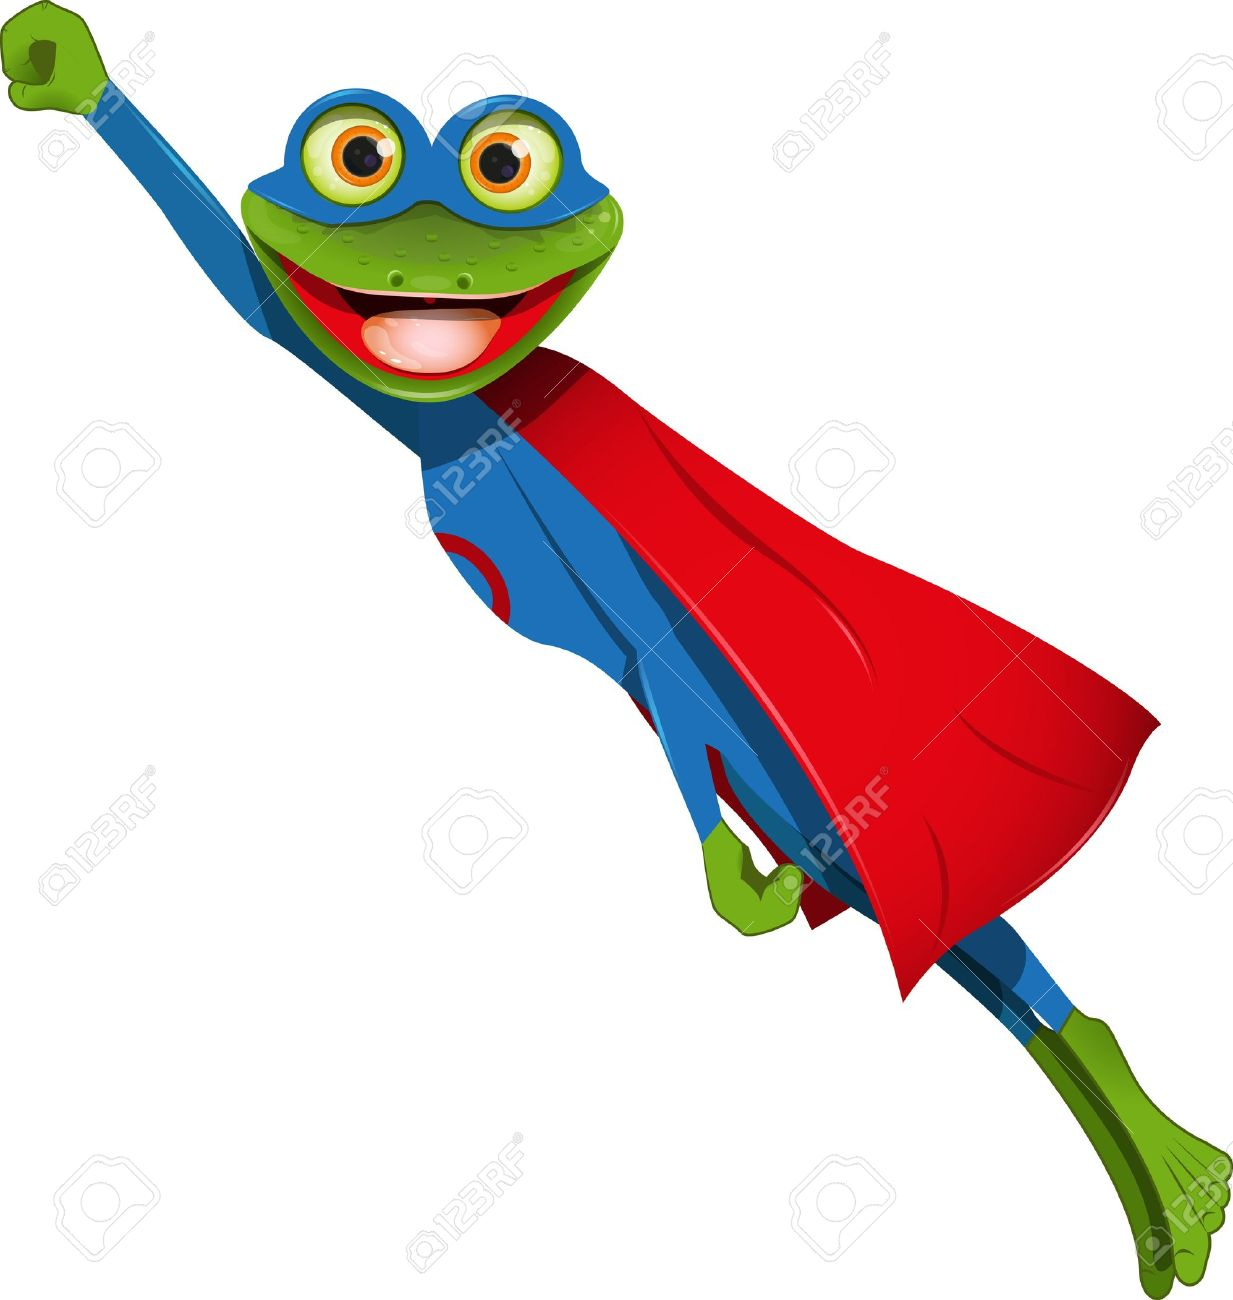 frog superhero in a mask and a blue cape - 15424159